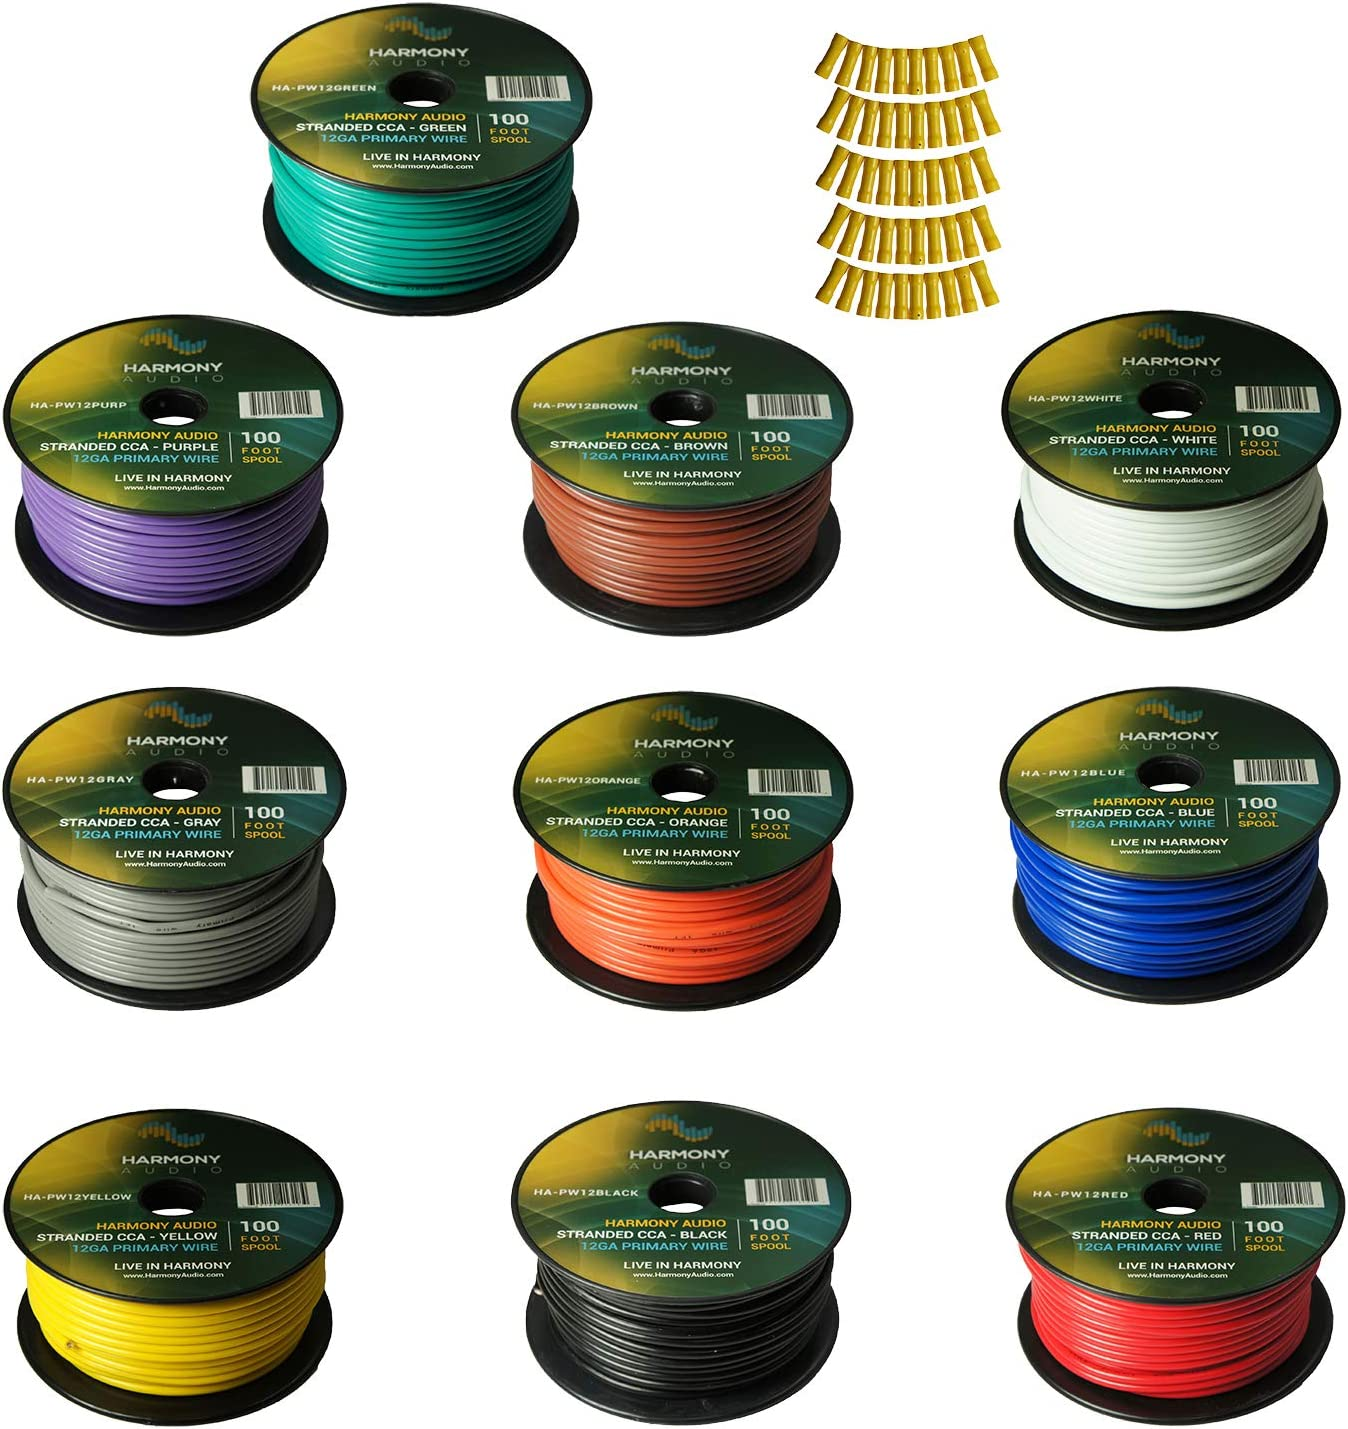 Harmony Audio Primary Single Conductor 12 Gauge Power or Ground Wire - 10 Rolls - 1000 Feet - Color Mix for Car Audio/Trailer/Model Train/Remote 71Uow5WDtbLSL1500_